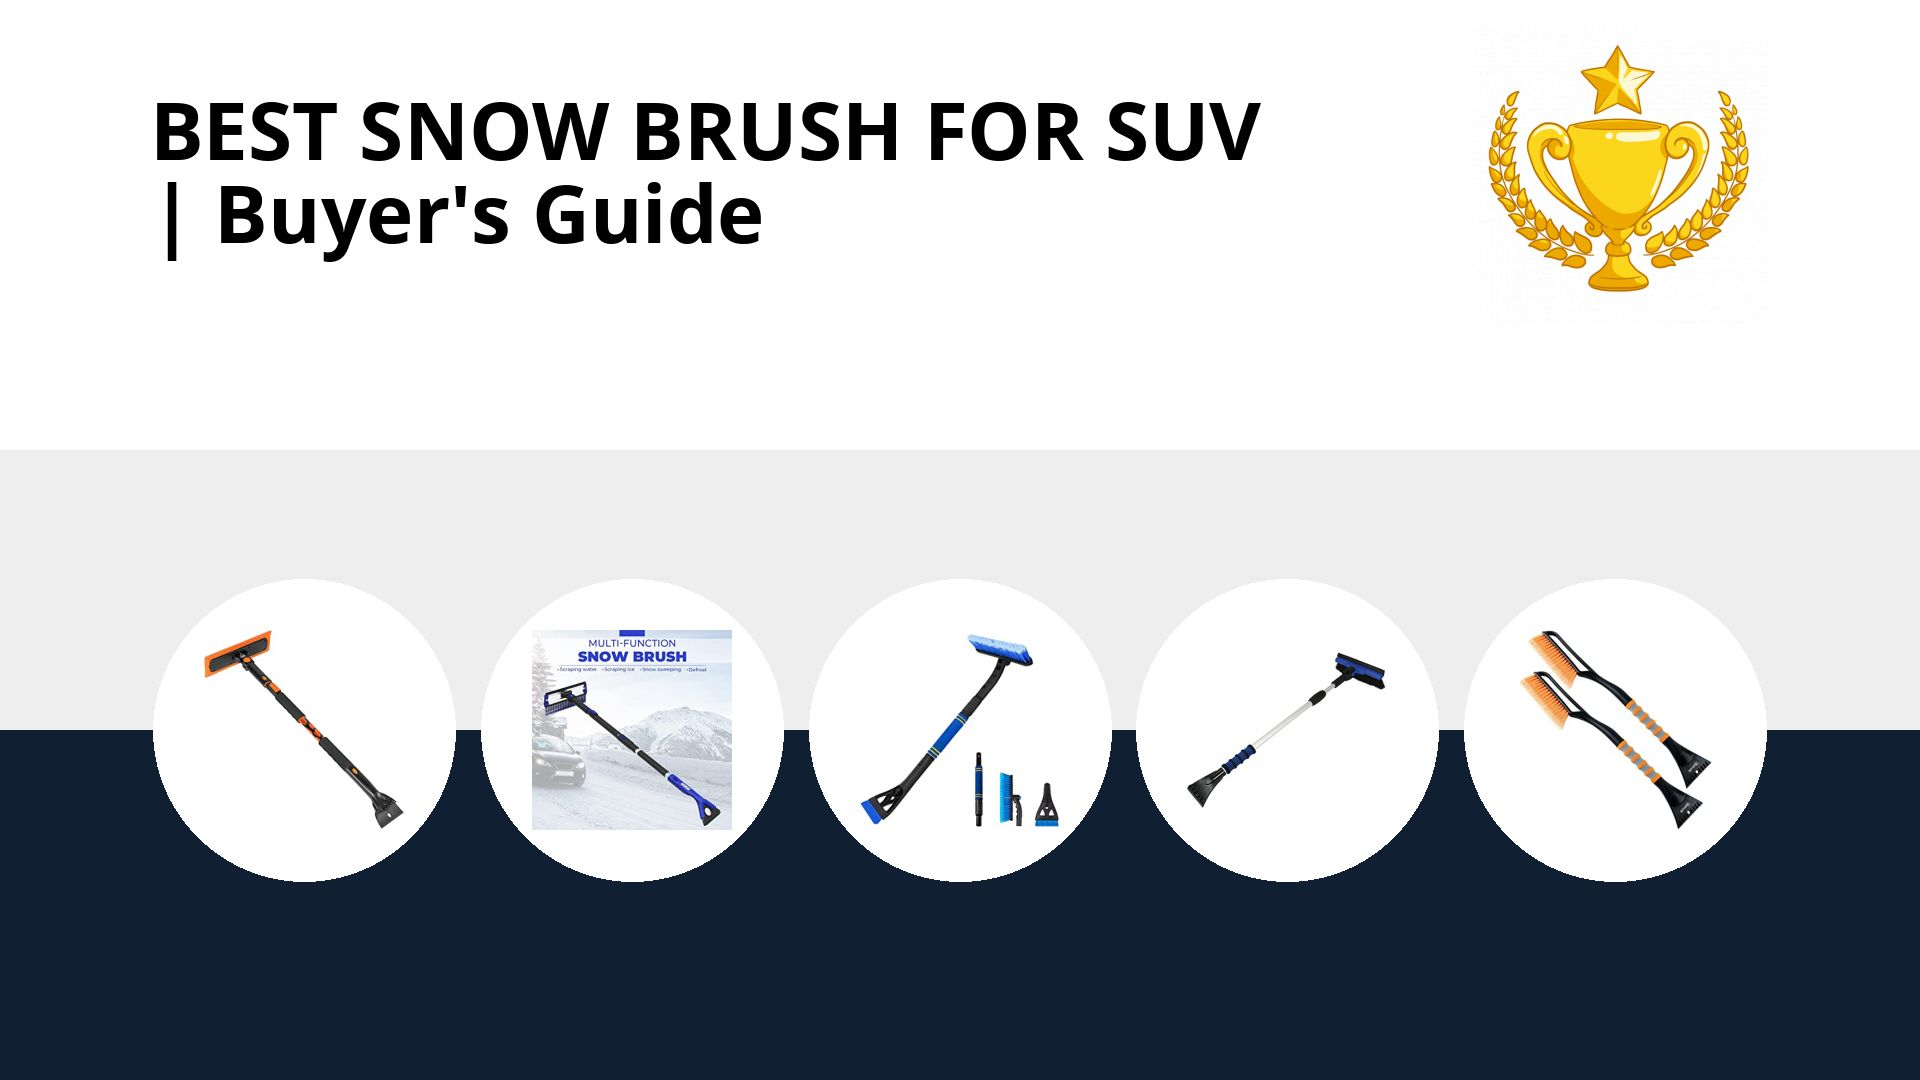 Best Snow Brush For Suv: image